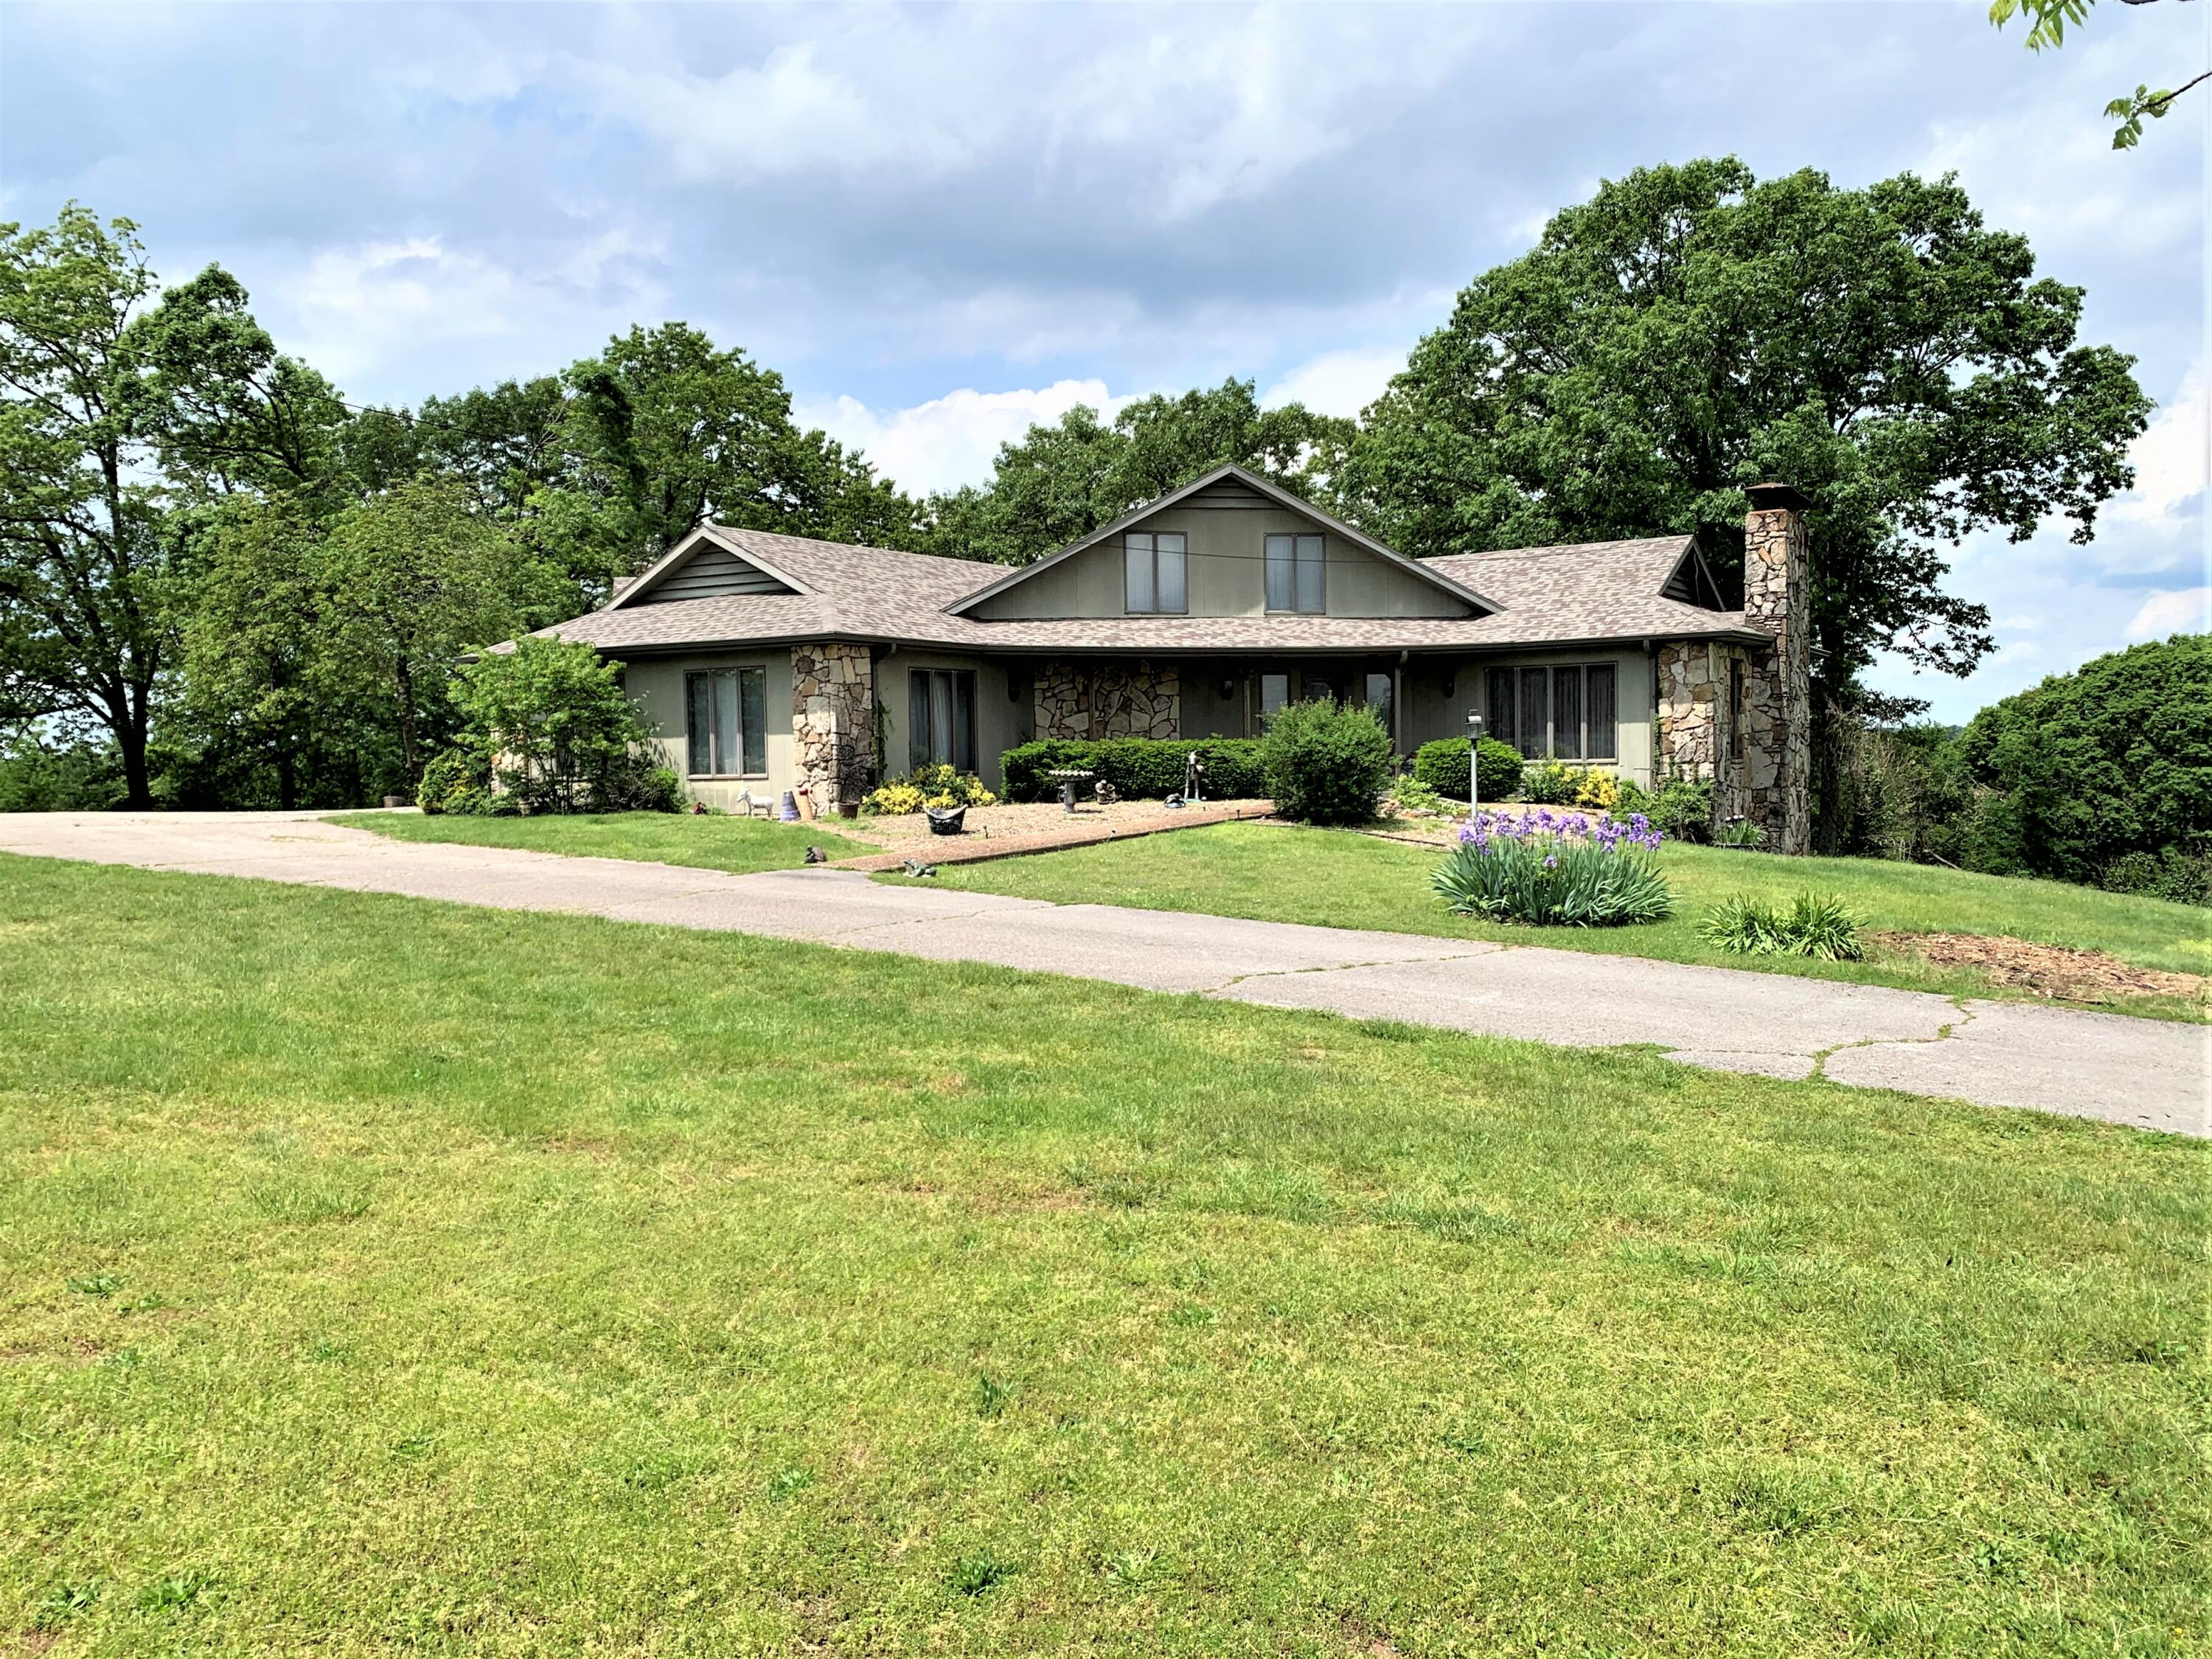 4177 State Hwy Branson, MO 65616